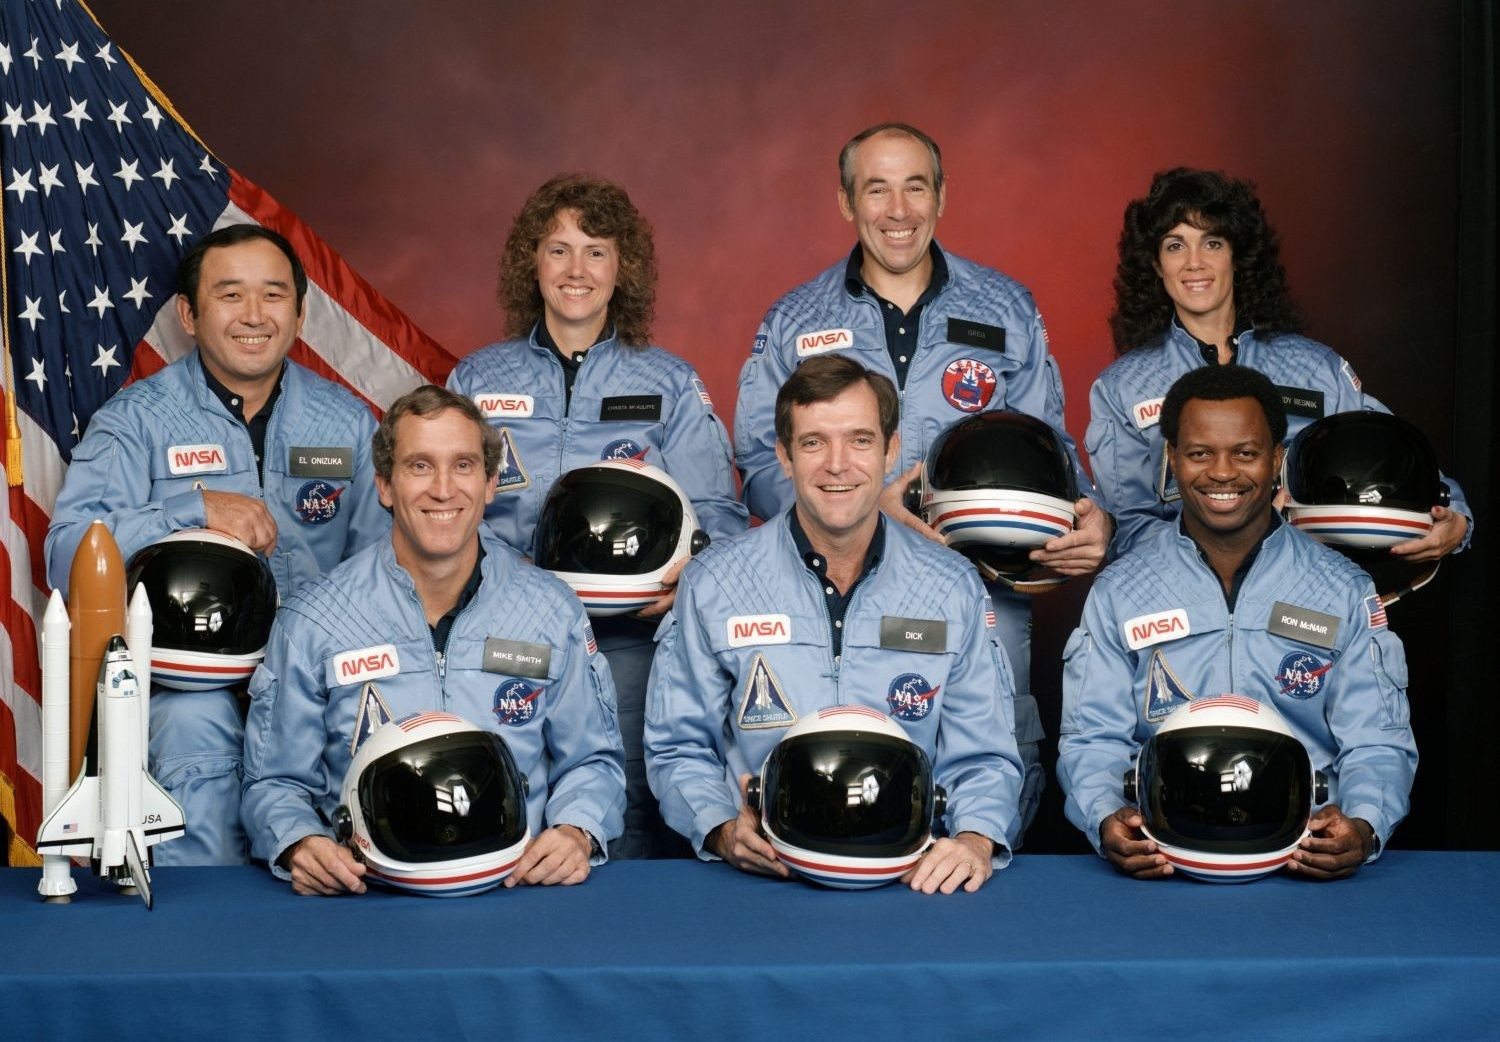 The crew of the ill-fated Challenger mission. Left to right are in the back row: Ellison S. Onizuka, Sharon Christa McAuliffe, Greg Jarvis, Judy Resnik. Left to right in the front row: Mike Smith, Dick Scobee, Ron McNair. Credit: NASA